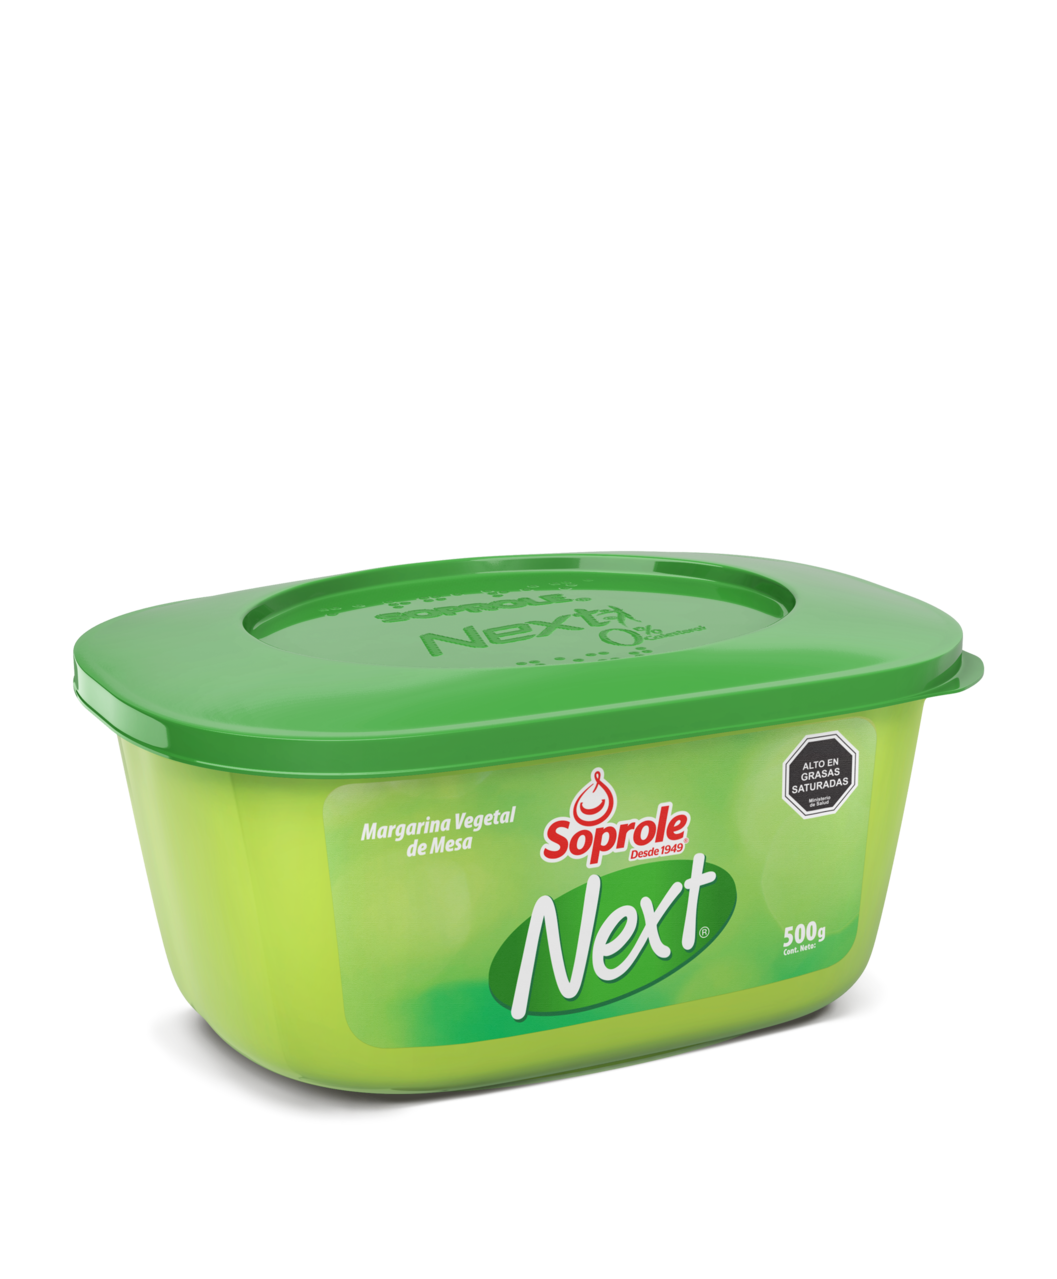 Soprole Next Margarina Pote microndeable 500g